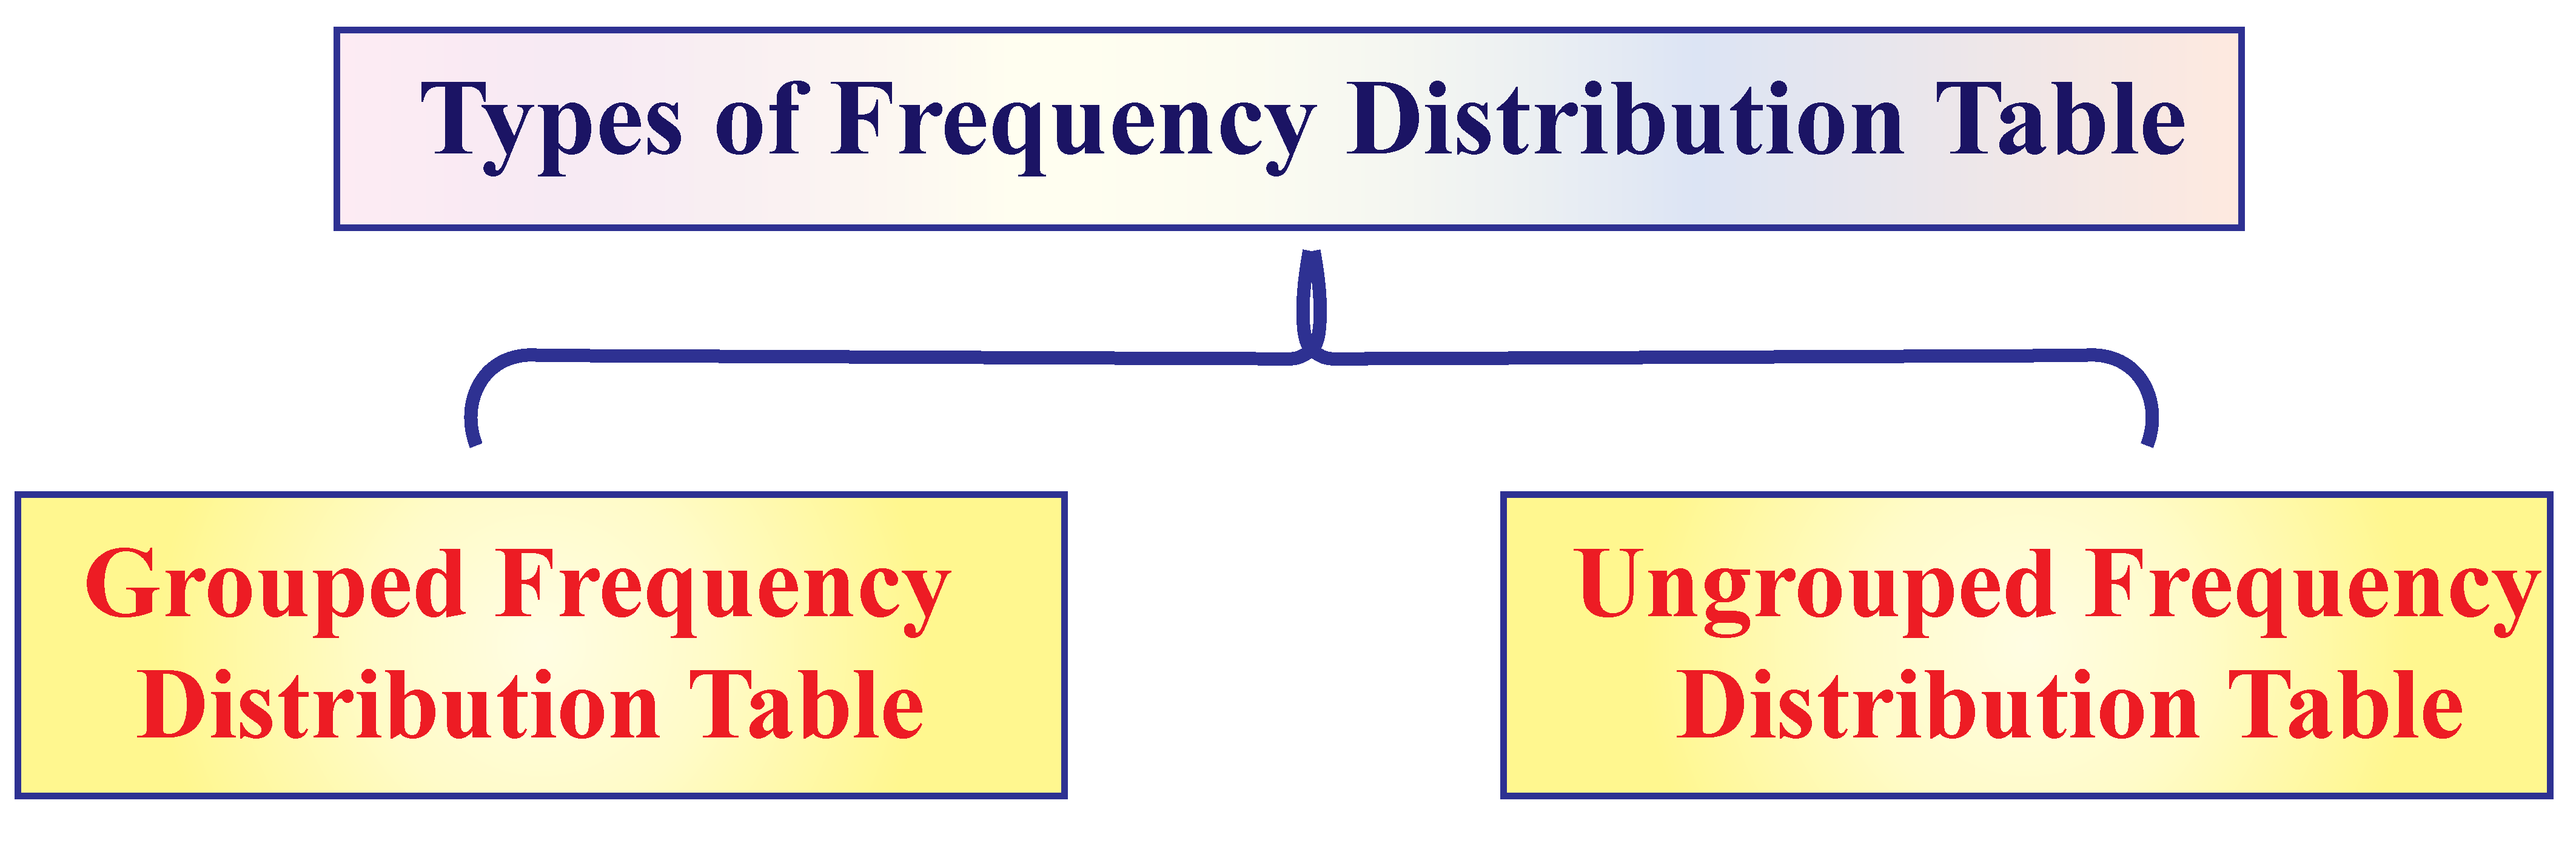 Types of Frequency Distribution Tables